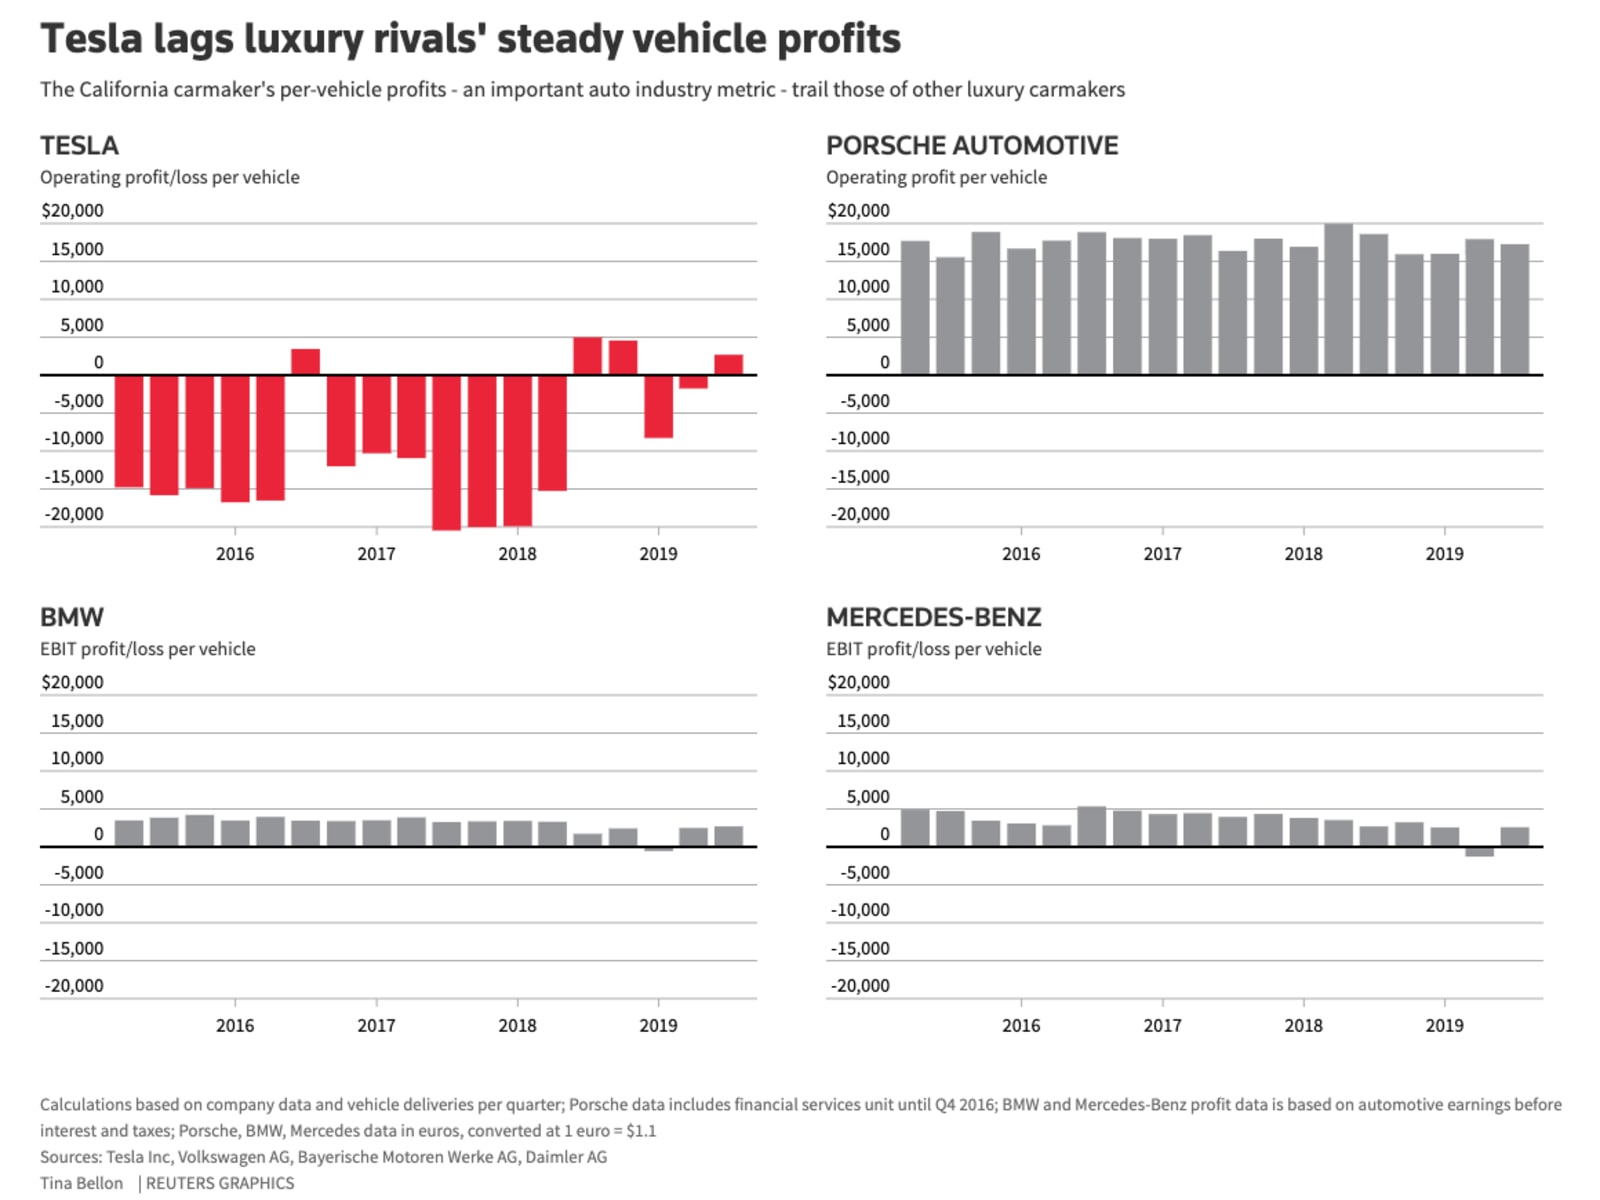 While we wait for Tesla's earnings report, here's how its profit per vehicle compares